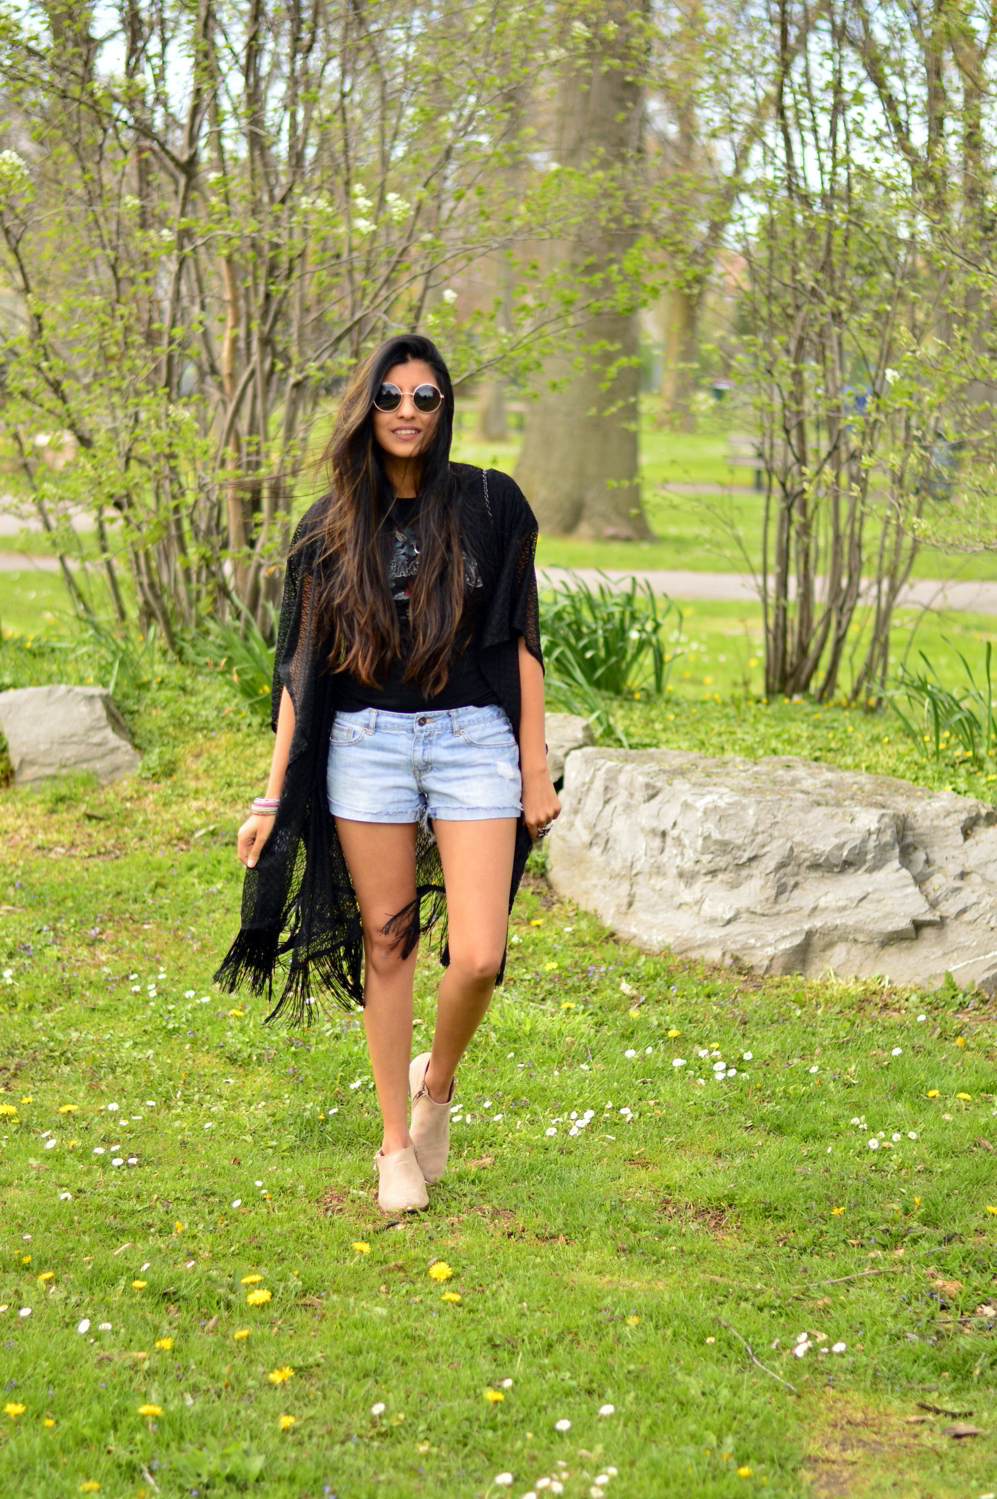 graphic-tee-fringe-boho-chic-what-to-wear-summer-concert-outfit 7